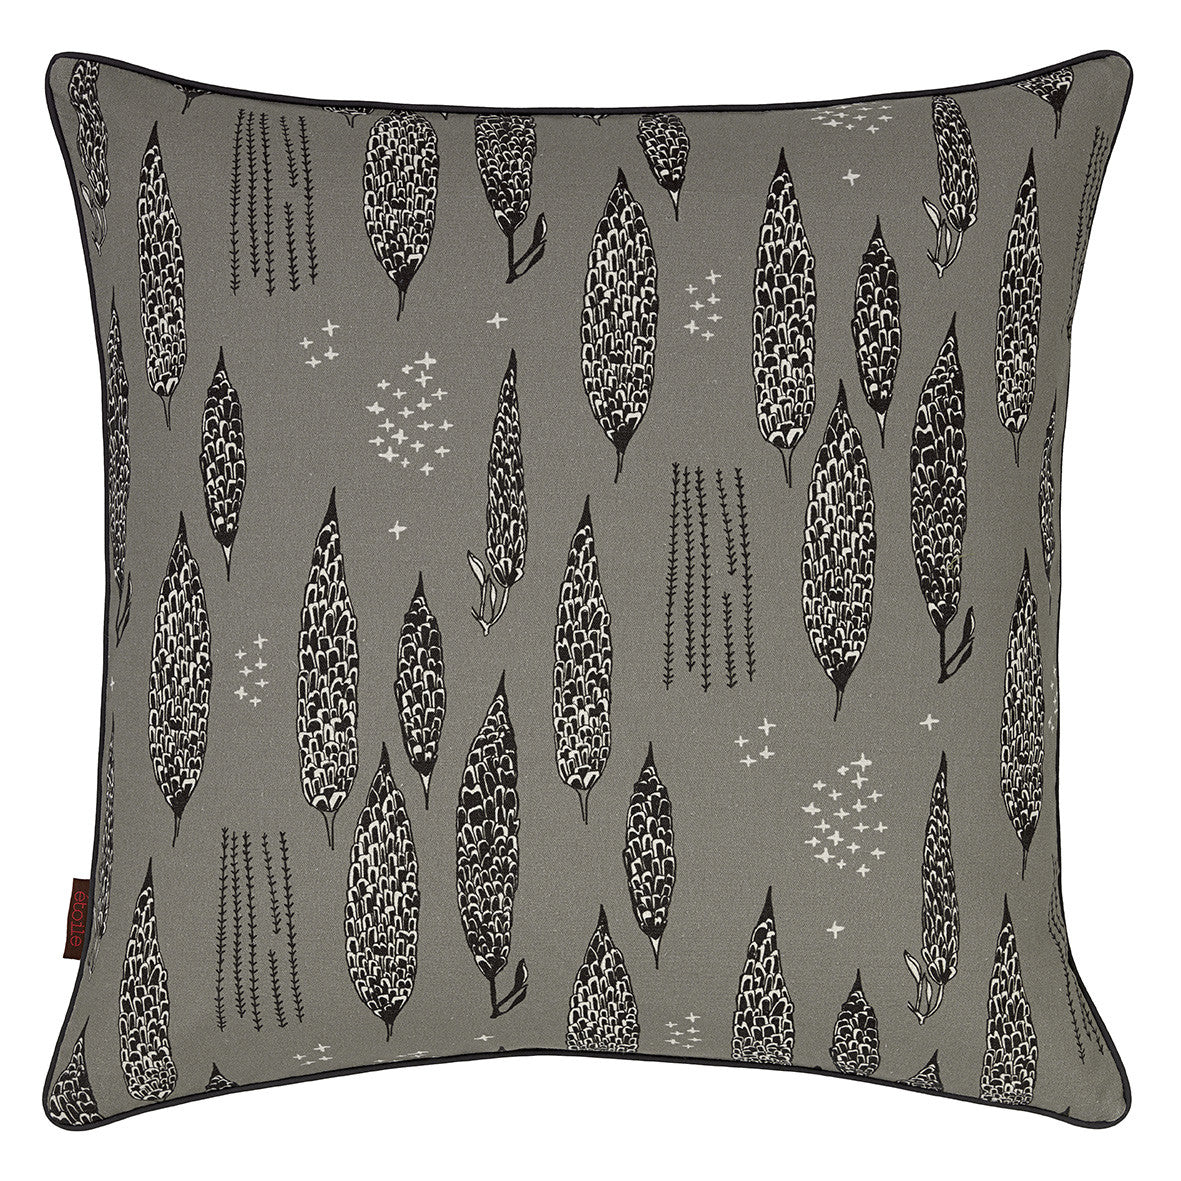 Graphic Tree Floral Pattern Linen Union Printed Cushion in Light Dove Grey Black